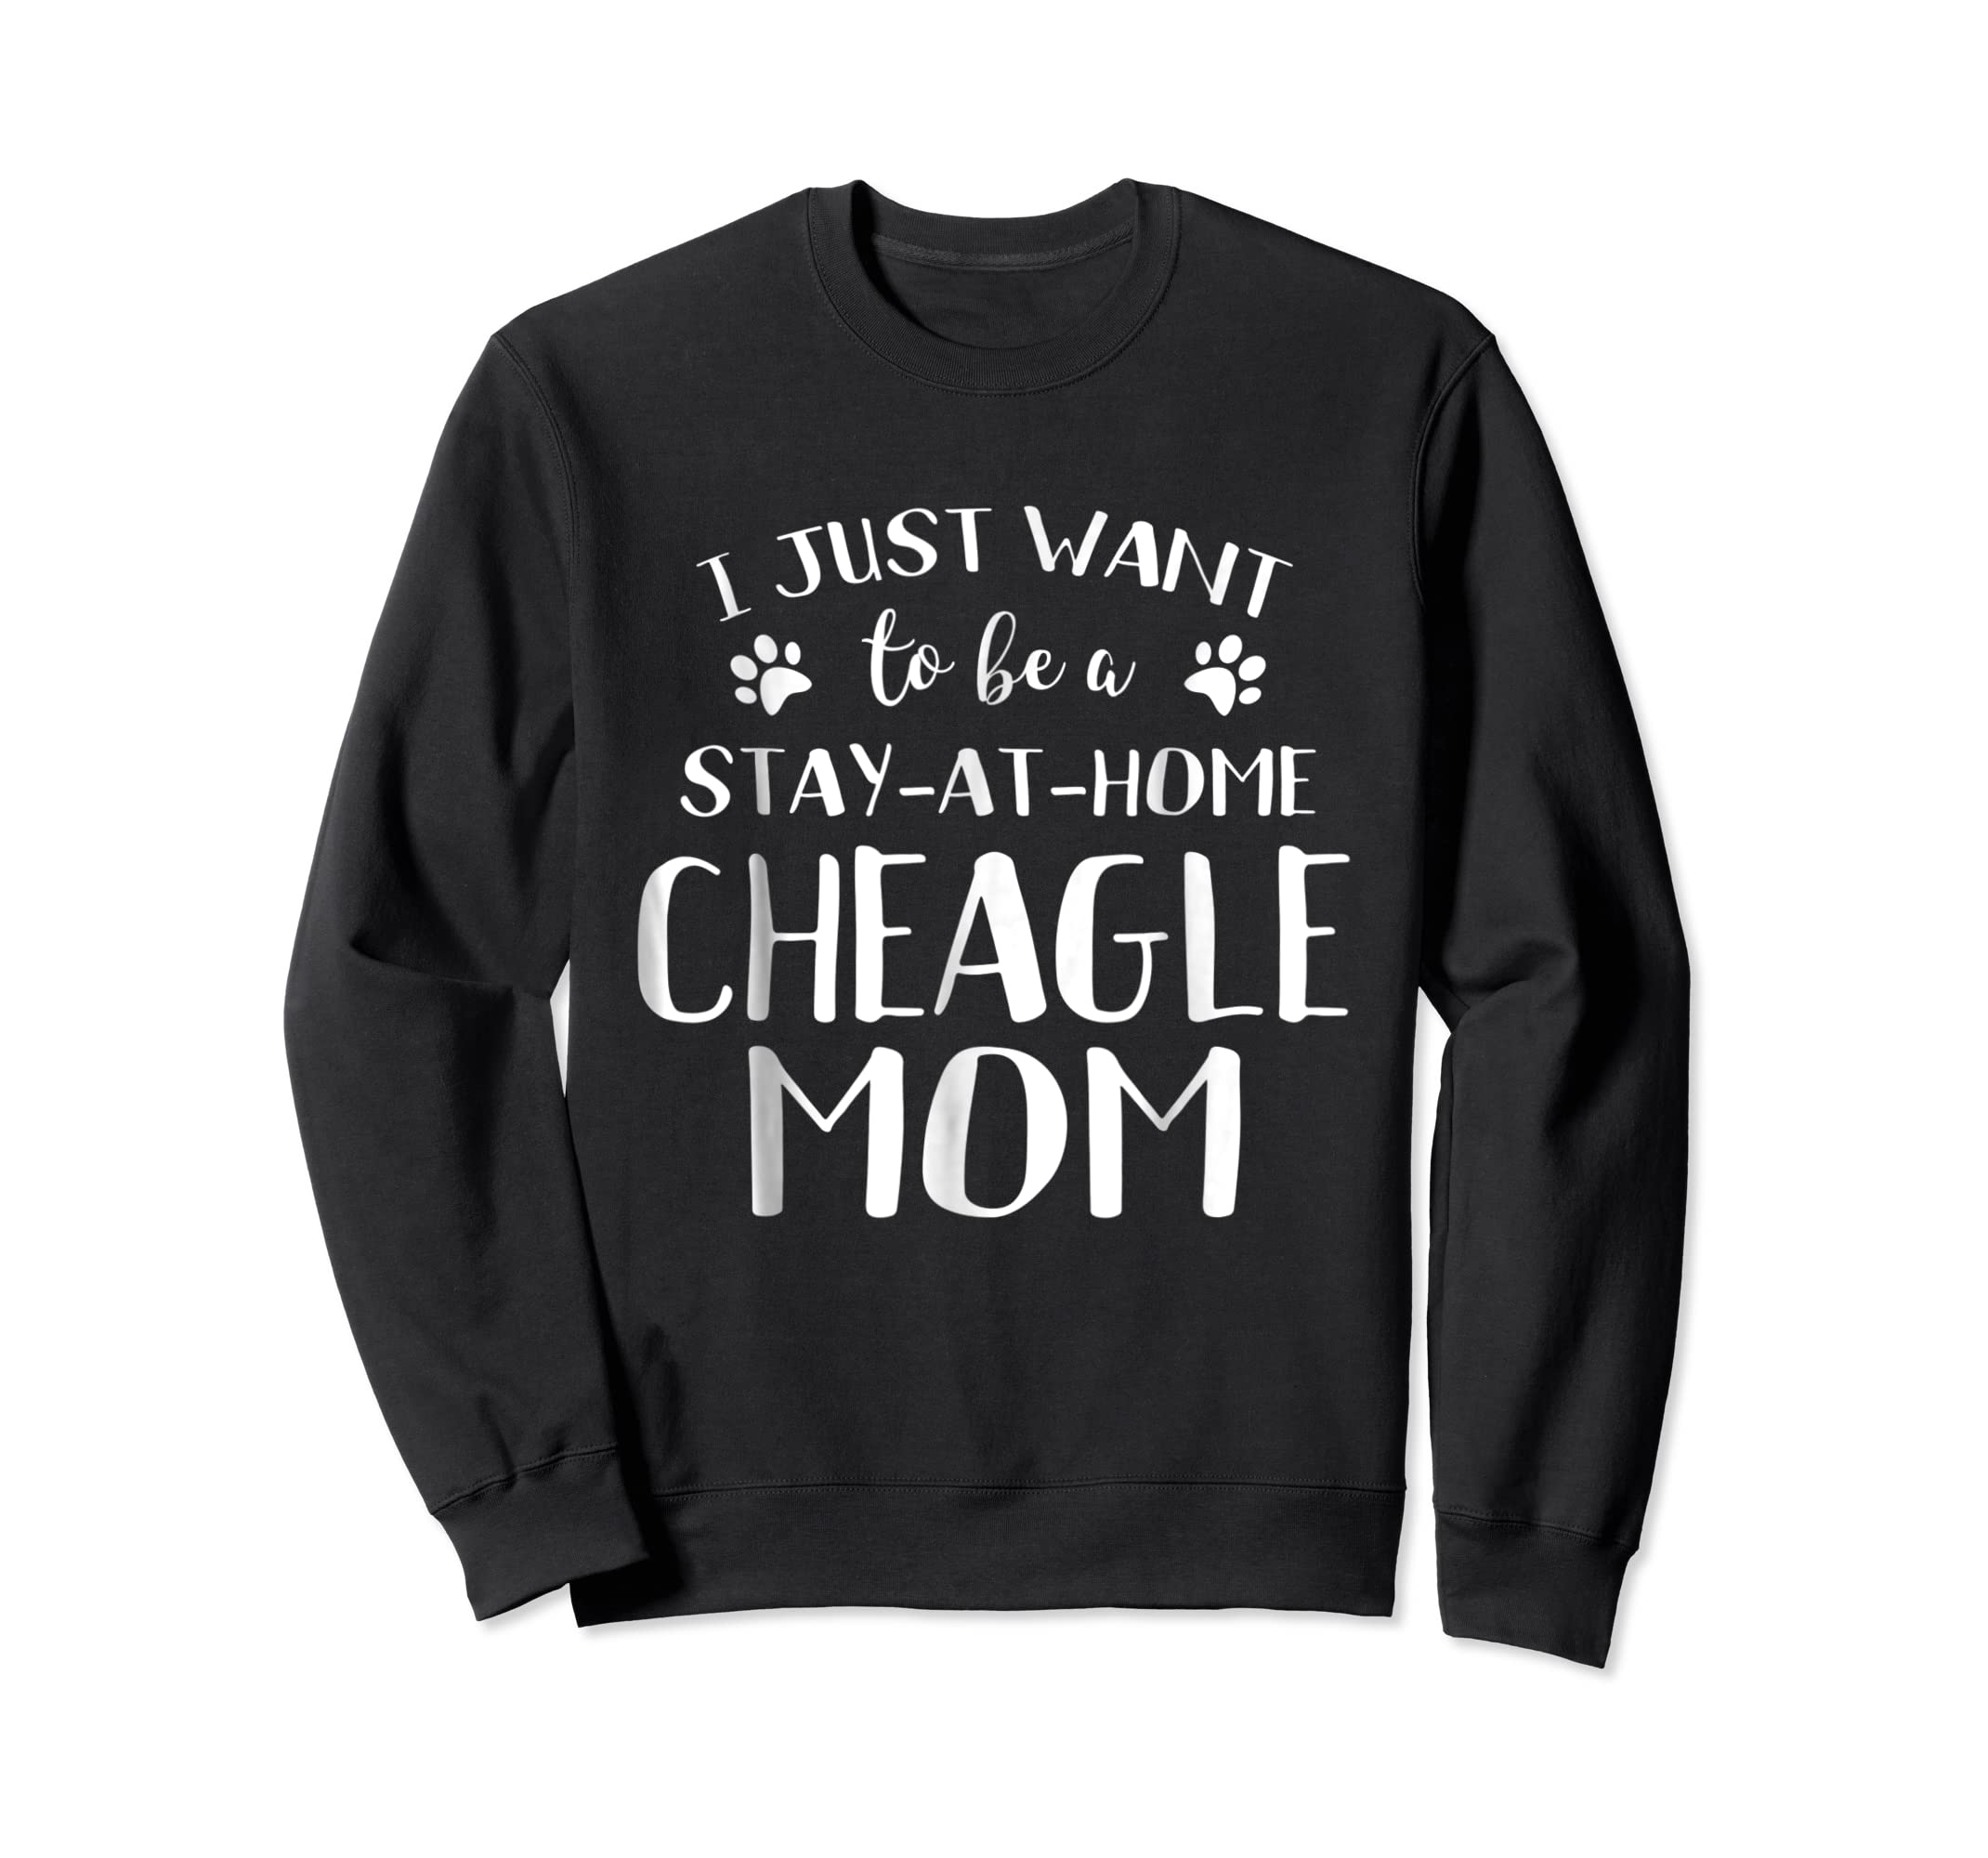 Cheagle Mom TShirt Cheagle Dog Breed Gift Pet Lover-Sweatshirt-Black